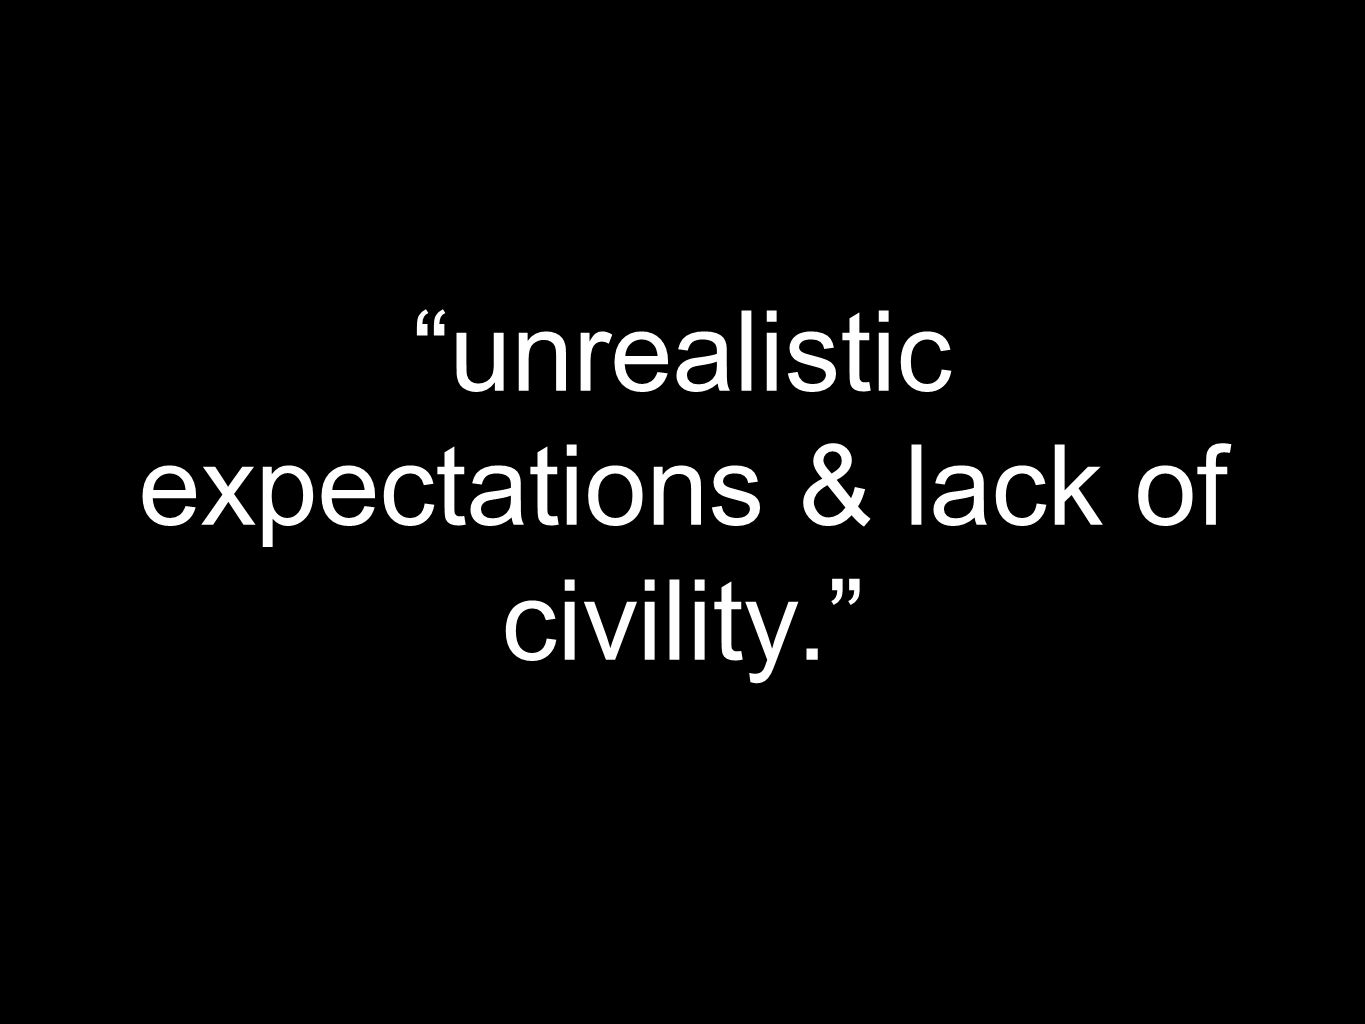 unrealistic expectations & lack of civility.